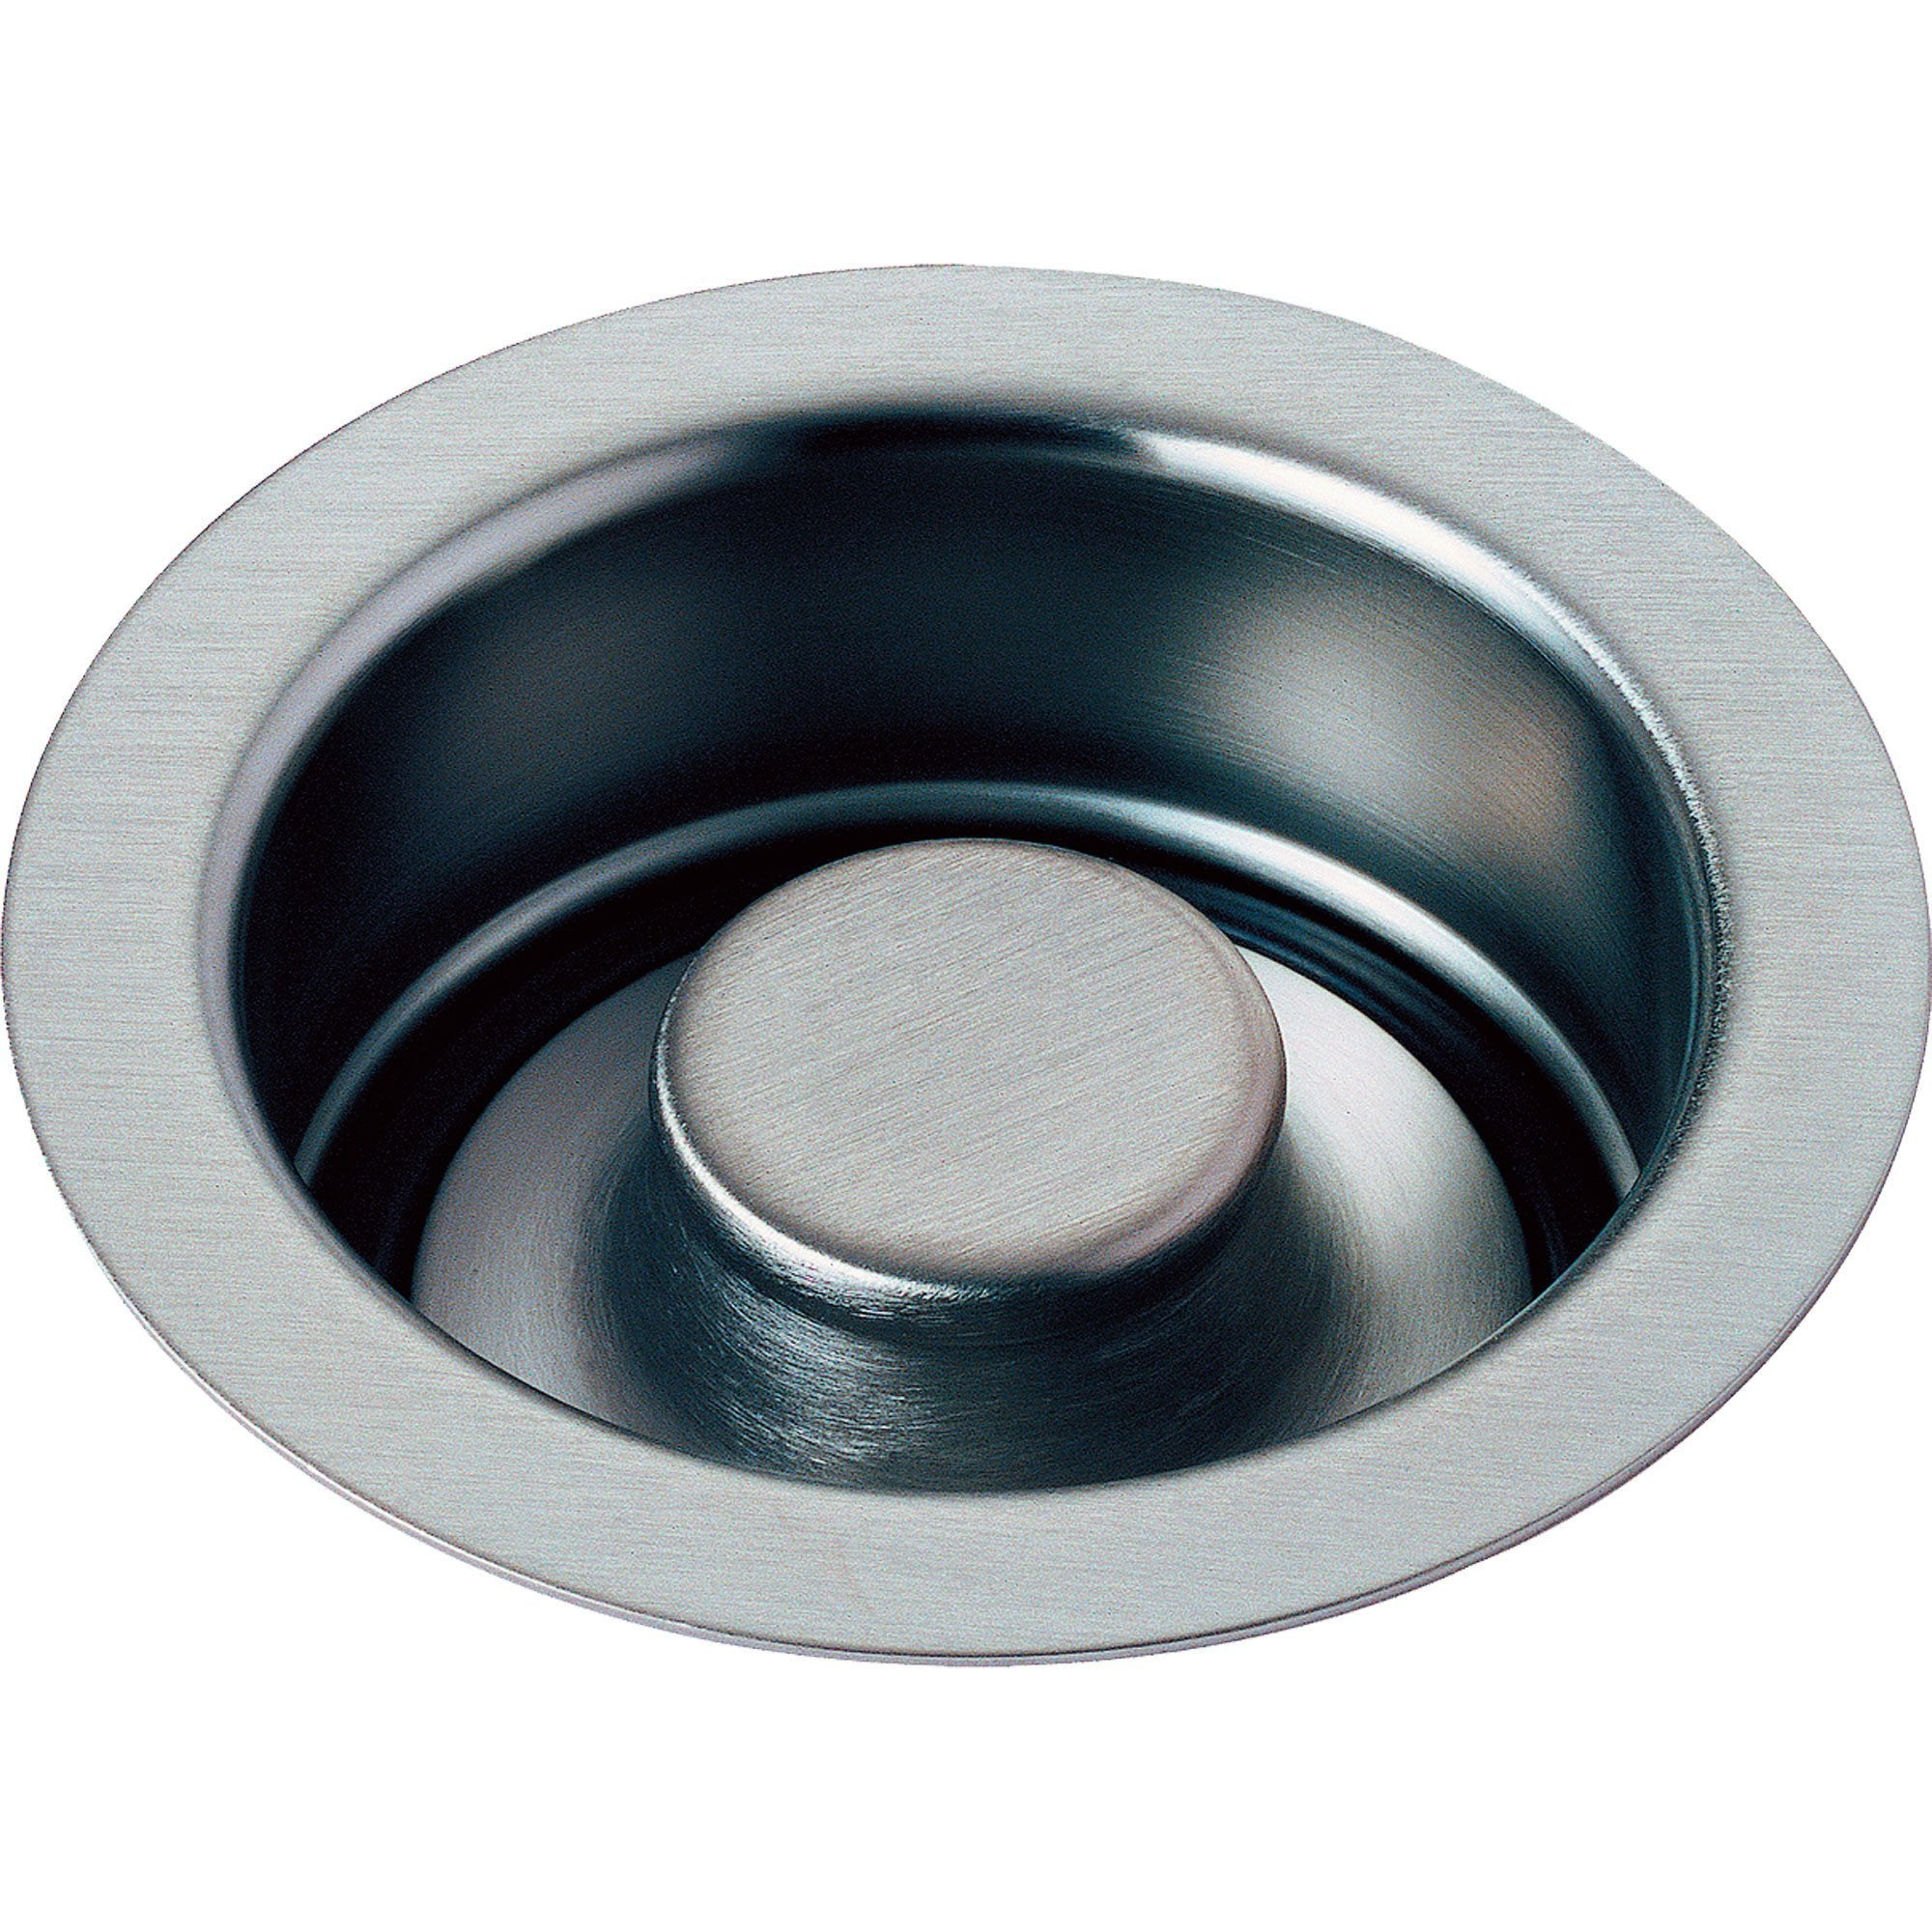 "Delta 4-1/2"" Arctic Stainless Kitchen Sink Disposal Flange and Stopper 638410"